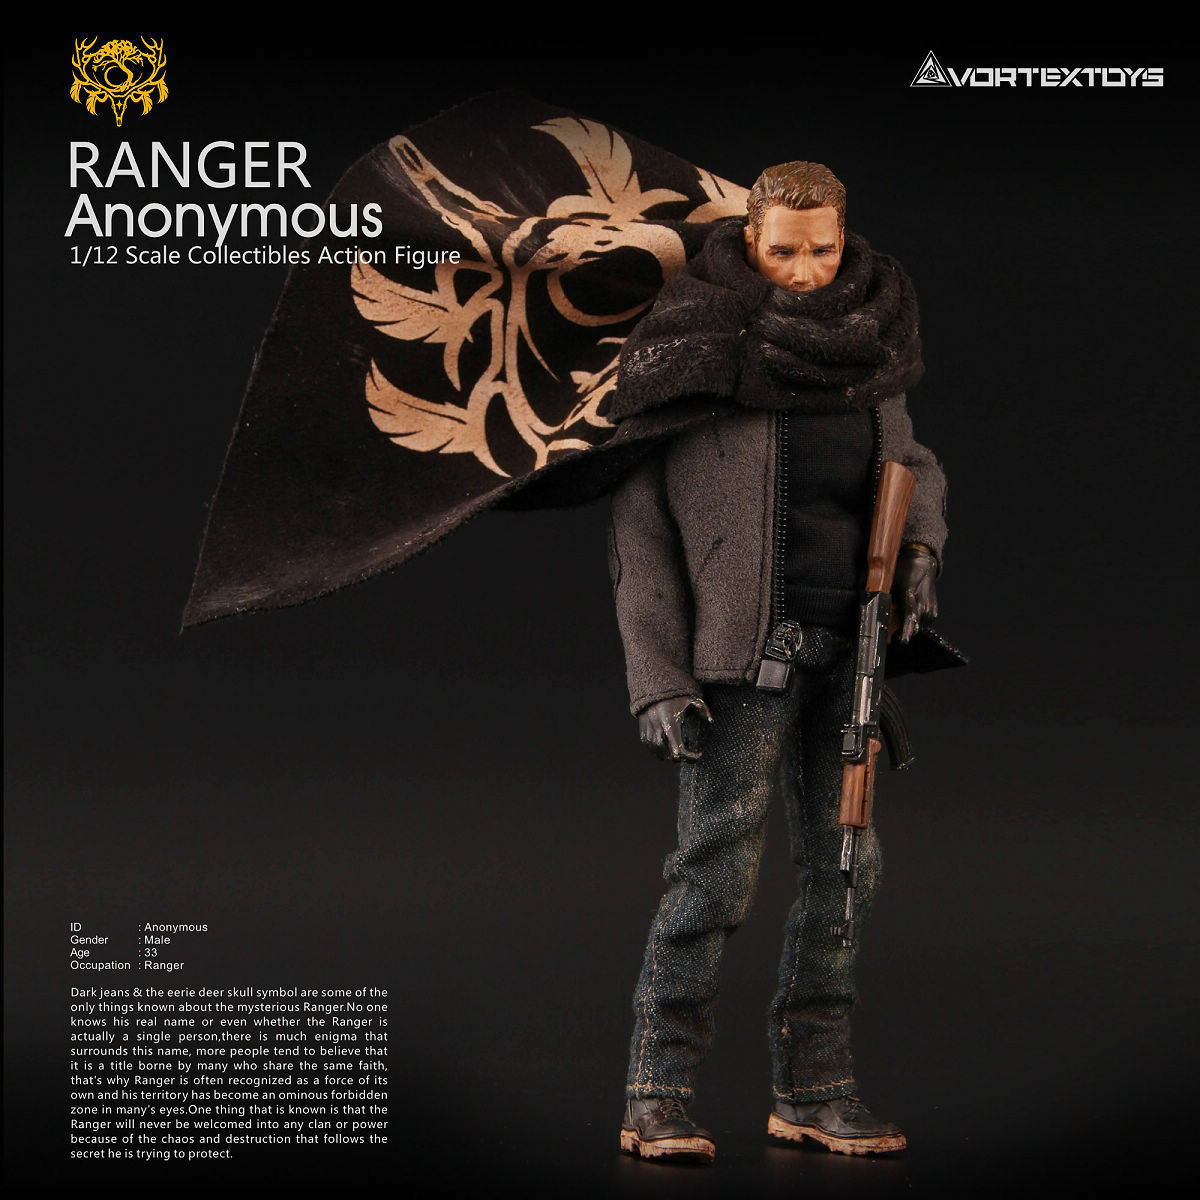 Vortex Toys YEW Series Ranger Anonymous 1 12 Action Figure